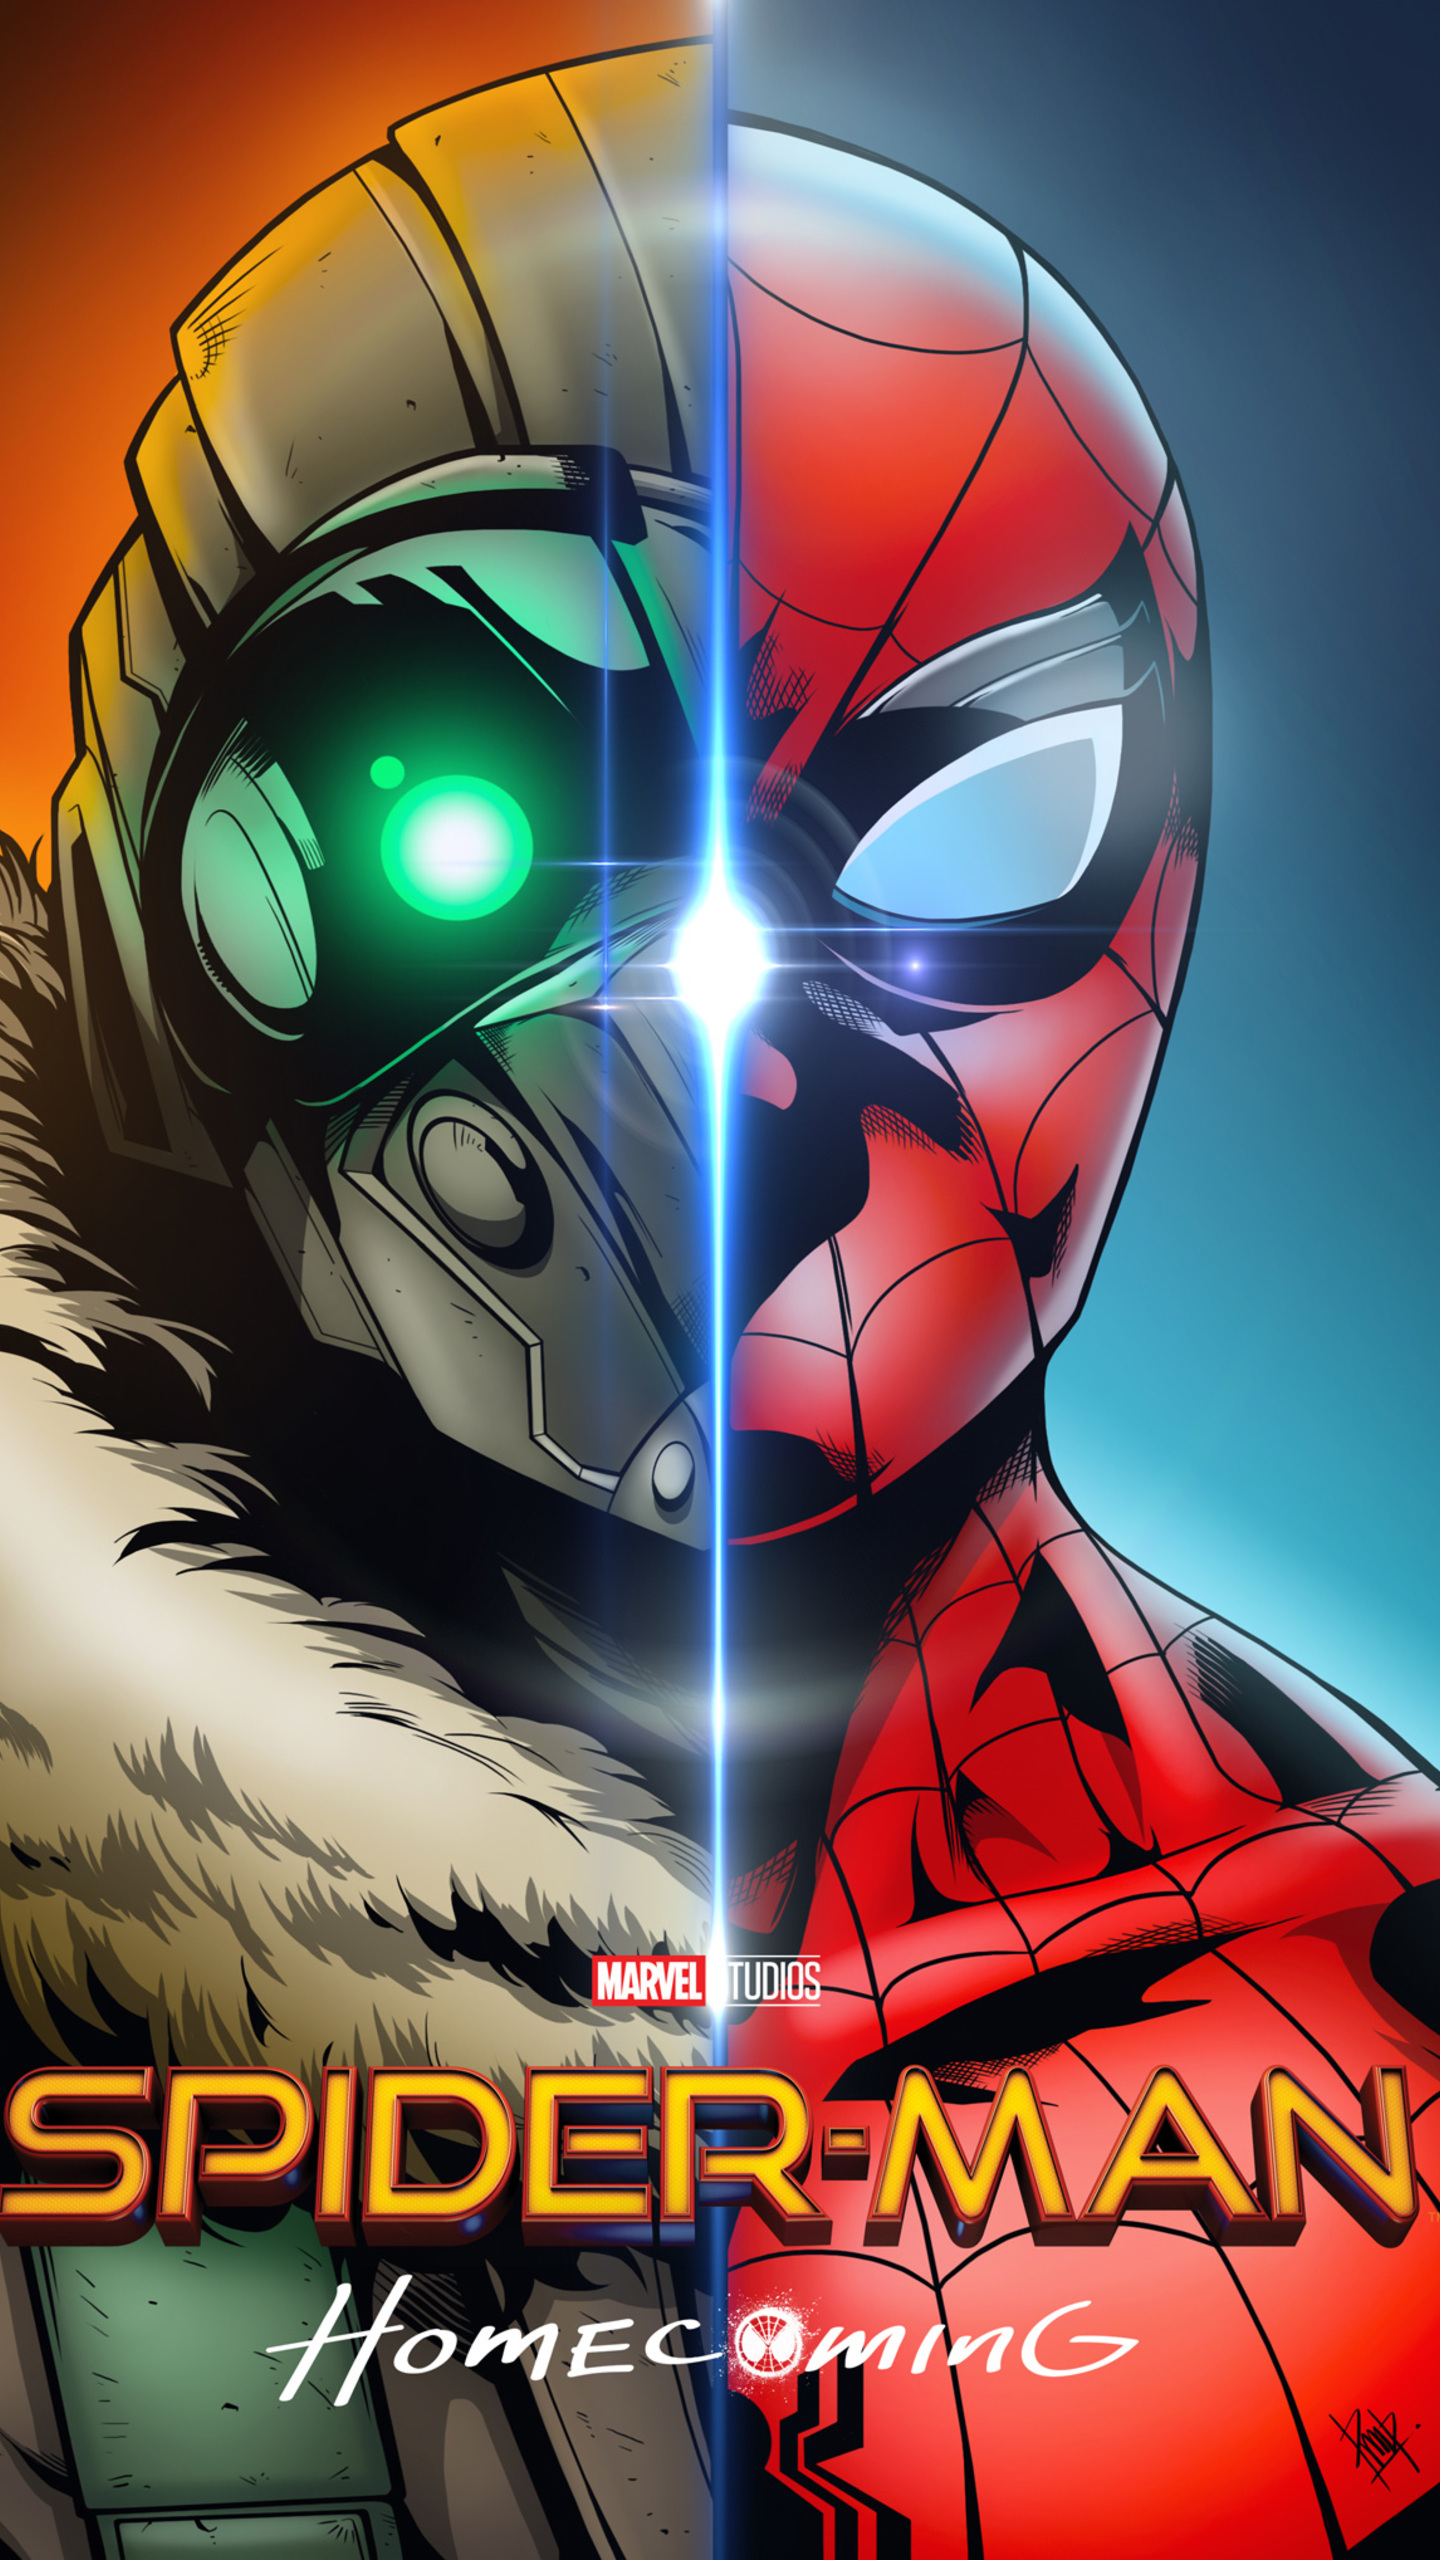 spider-man-homecoming-art-fn.jpg